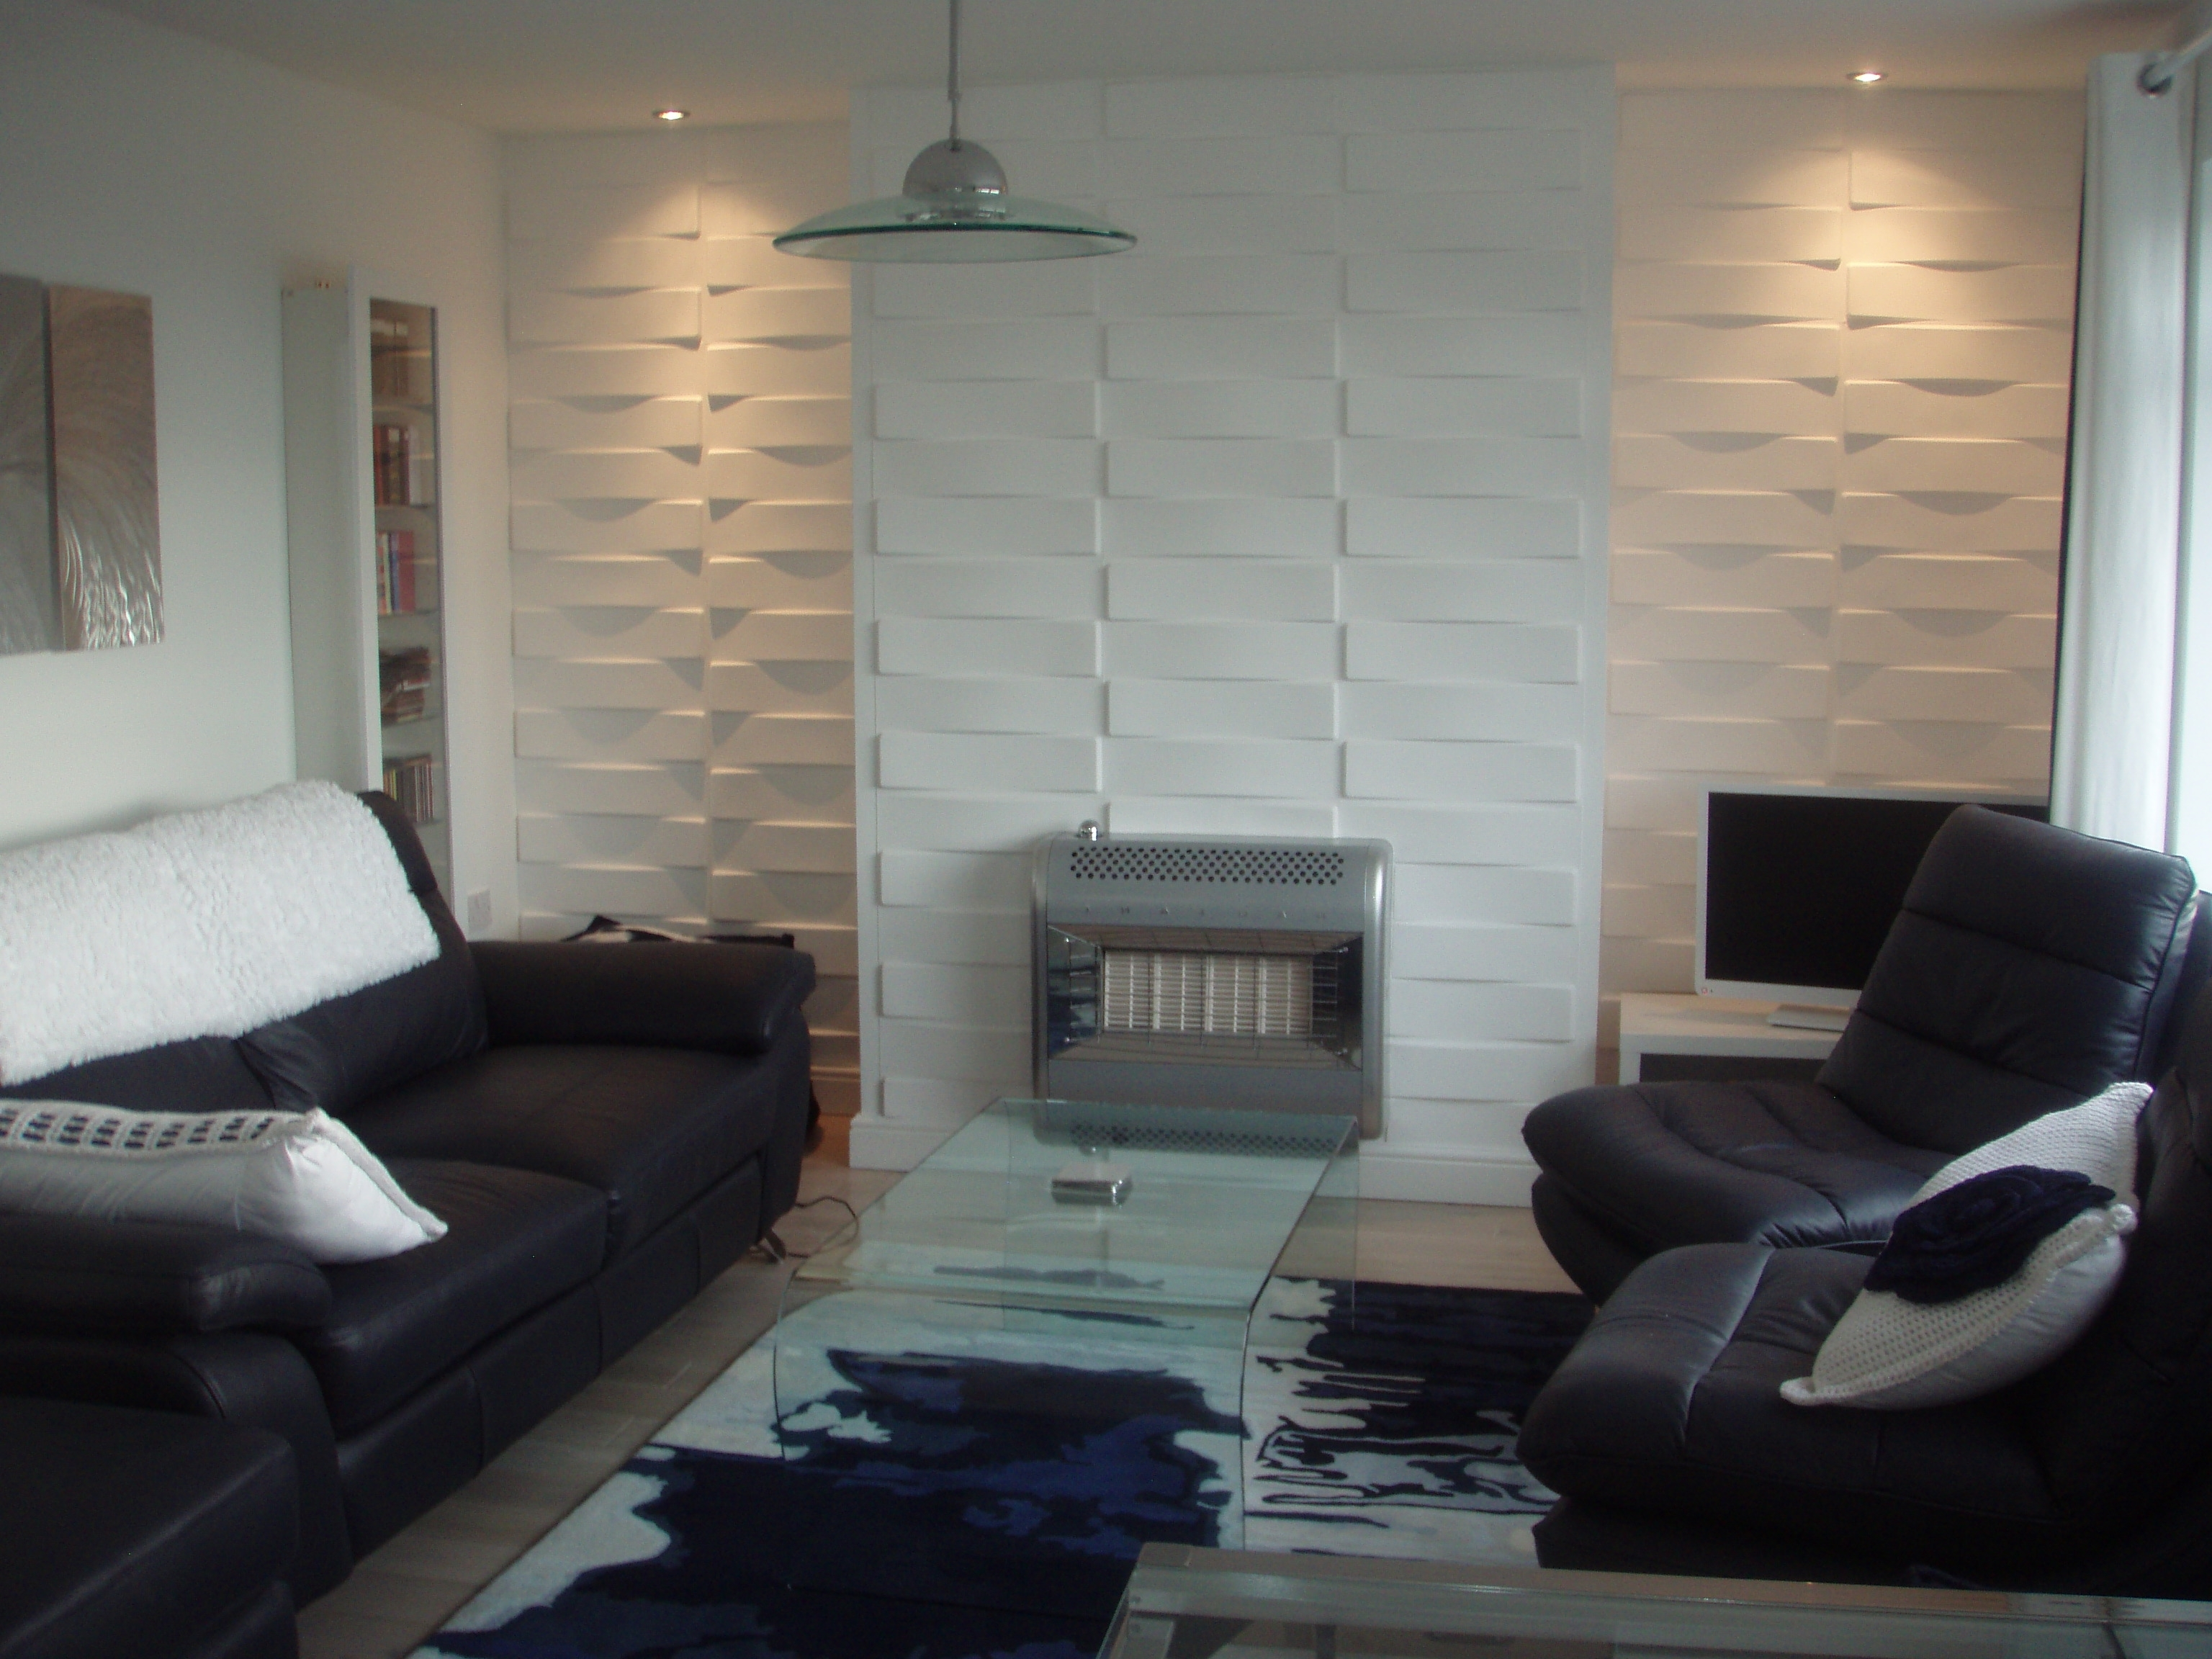 Daisy Decorating & Design With Regard To Most Up To Date Painting 3d Wall Panels (View 14 of 15)